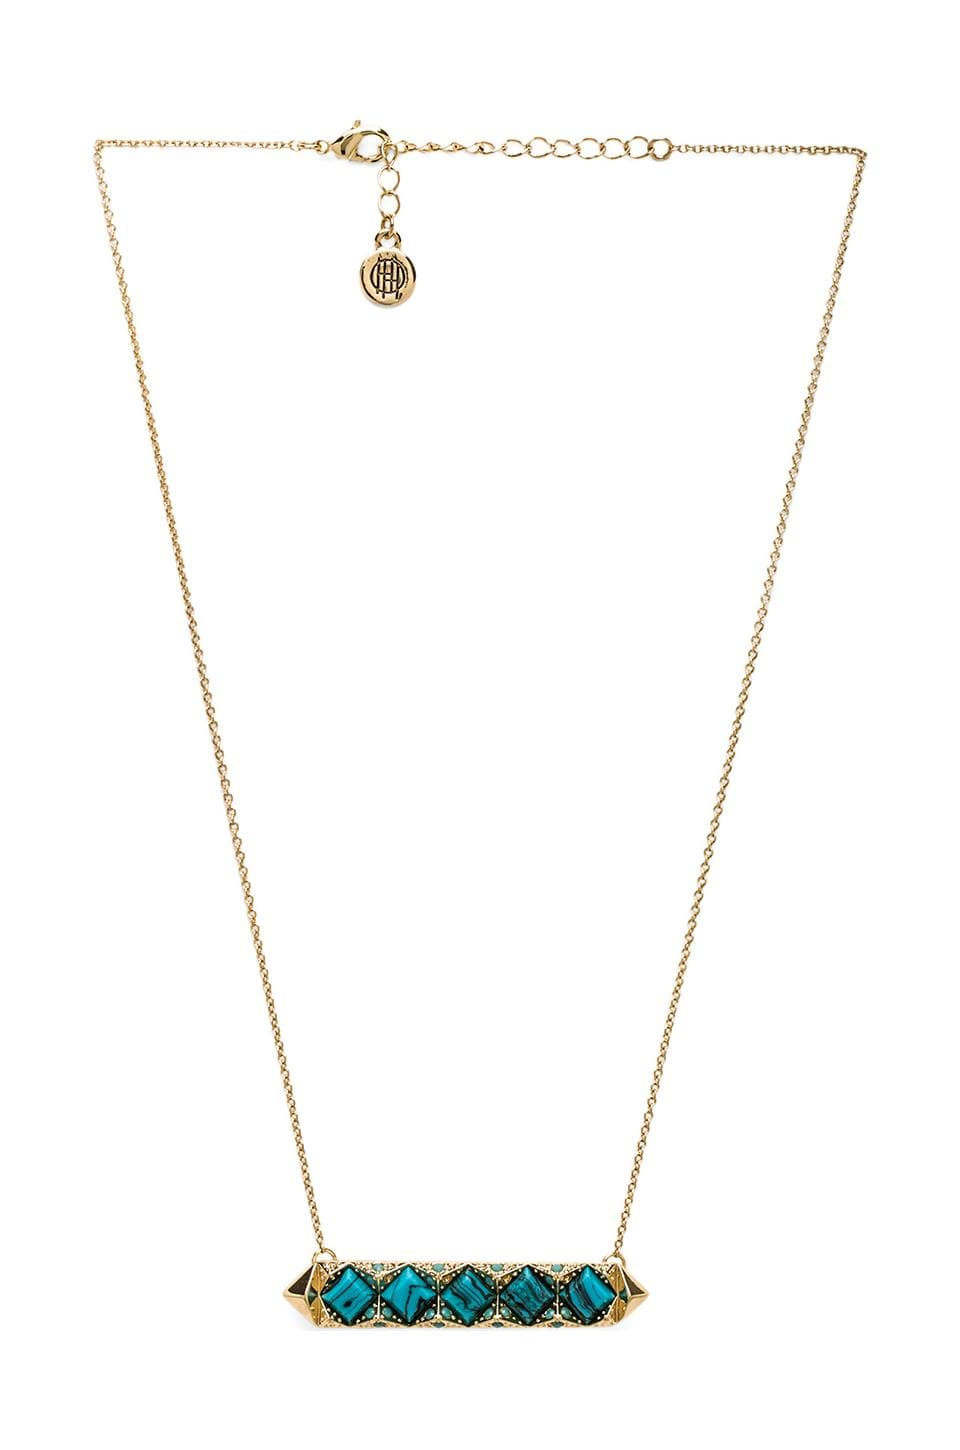 House of Harlow 1960 House of Harlow Mykonos Bar Necklace in Gold & Turquoise